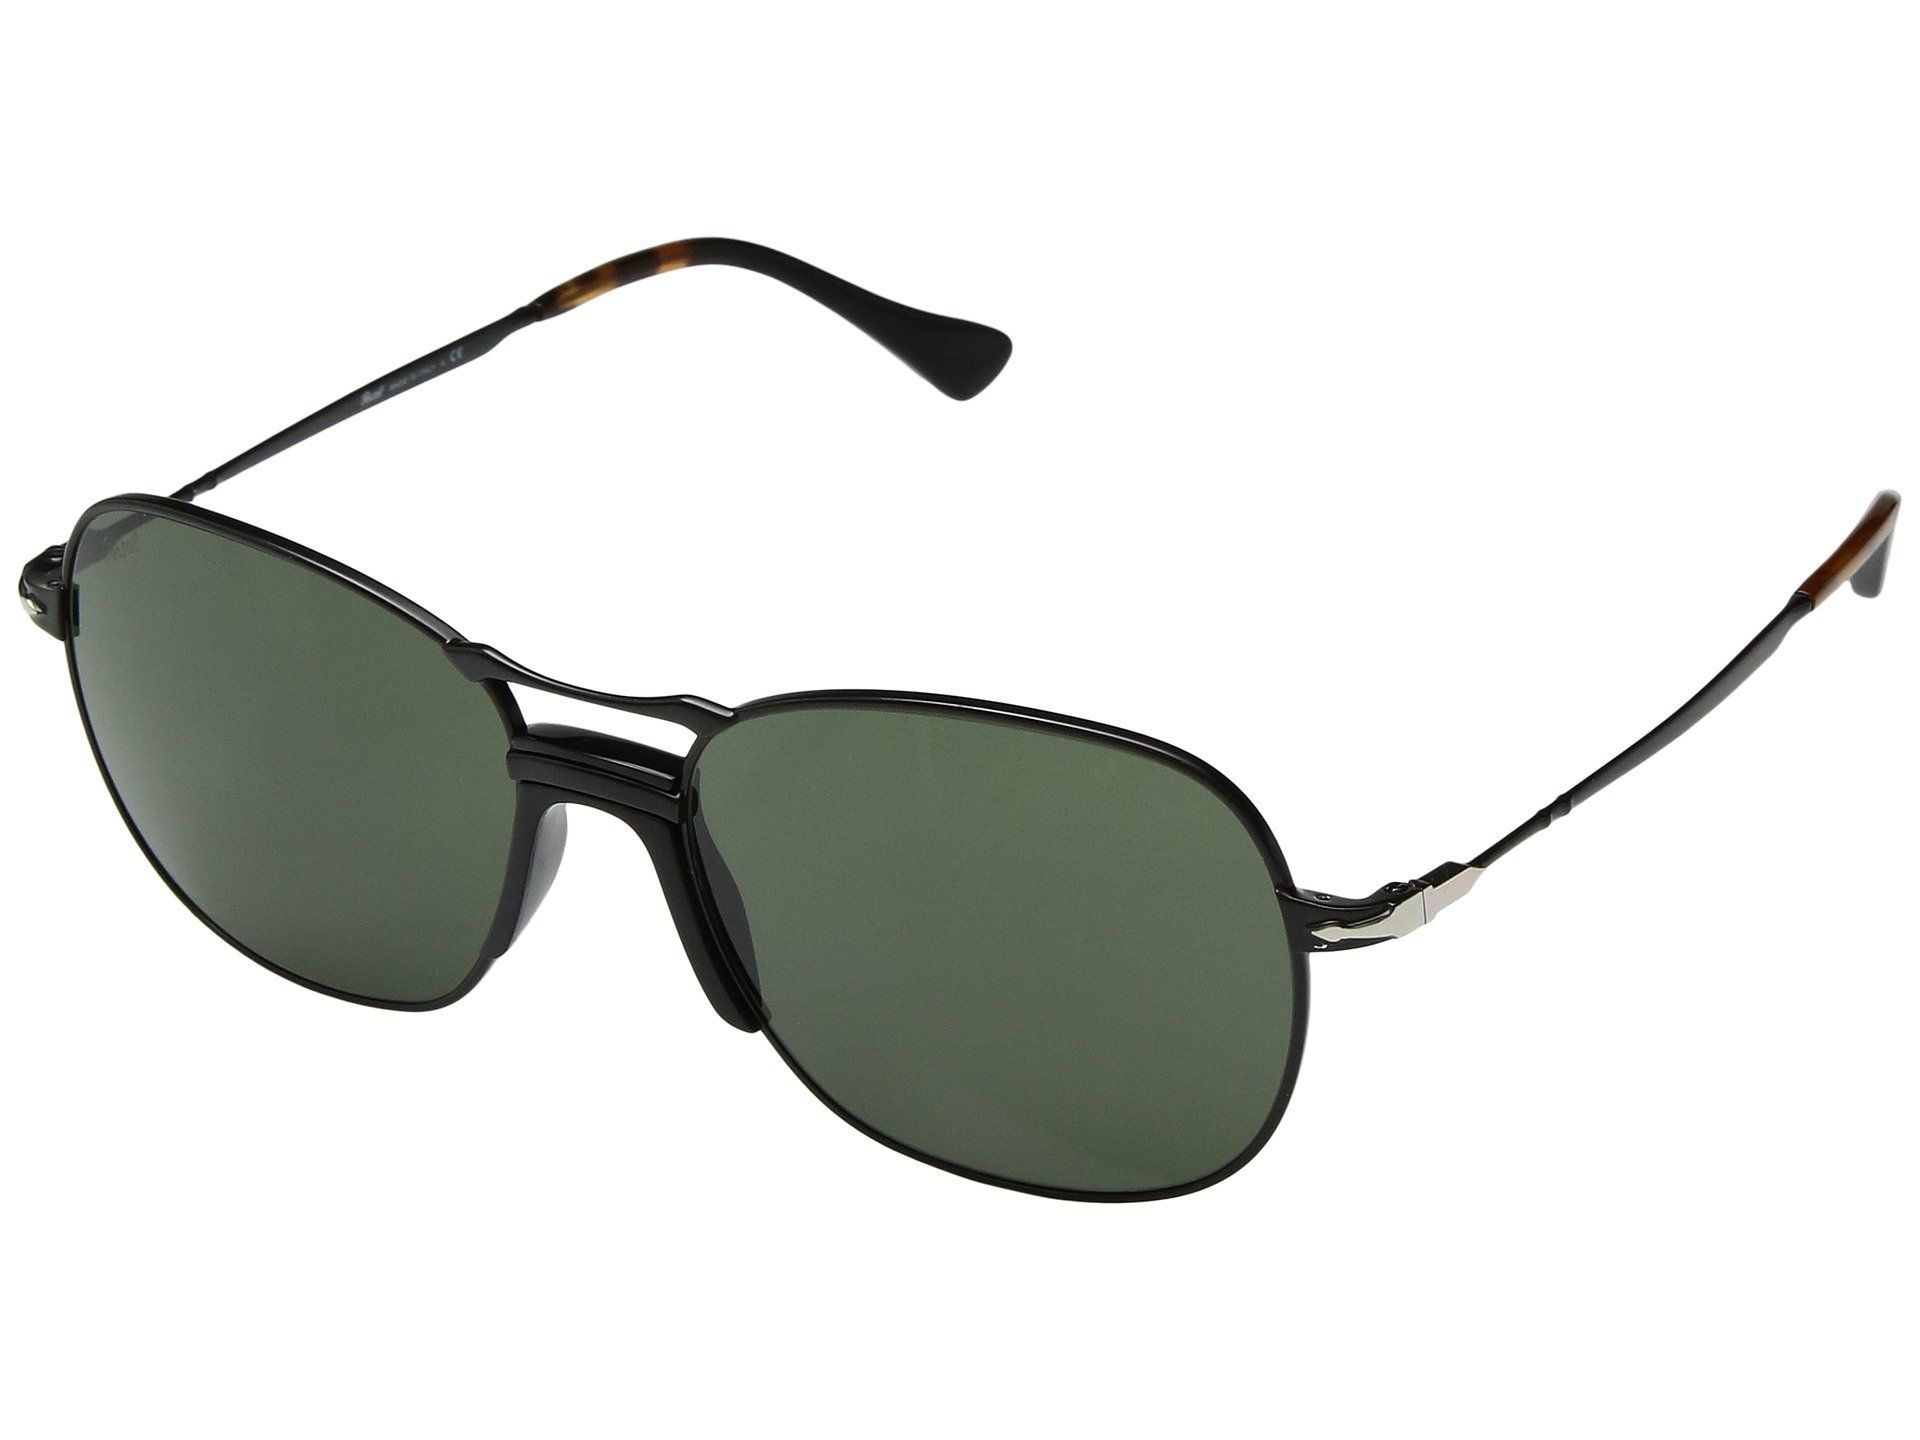 7d81bac36d Buy Persol Persol 0PO2449S in Egypt